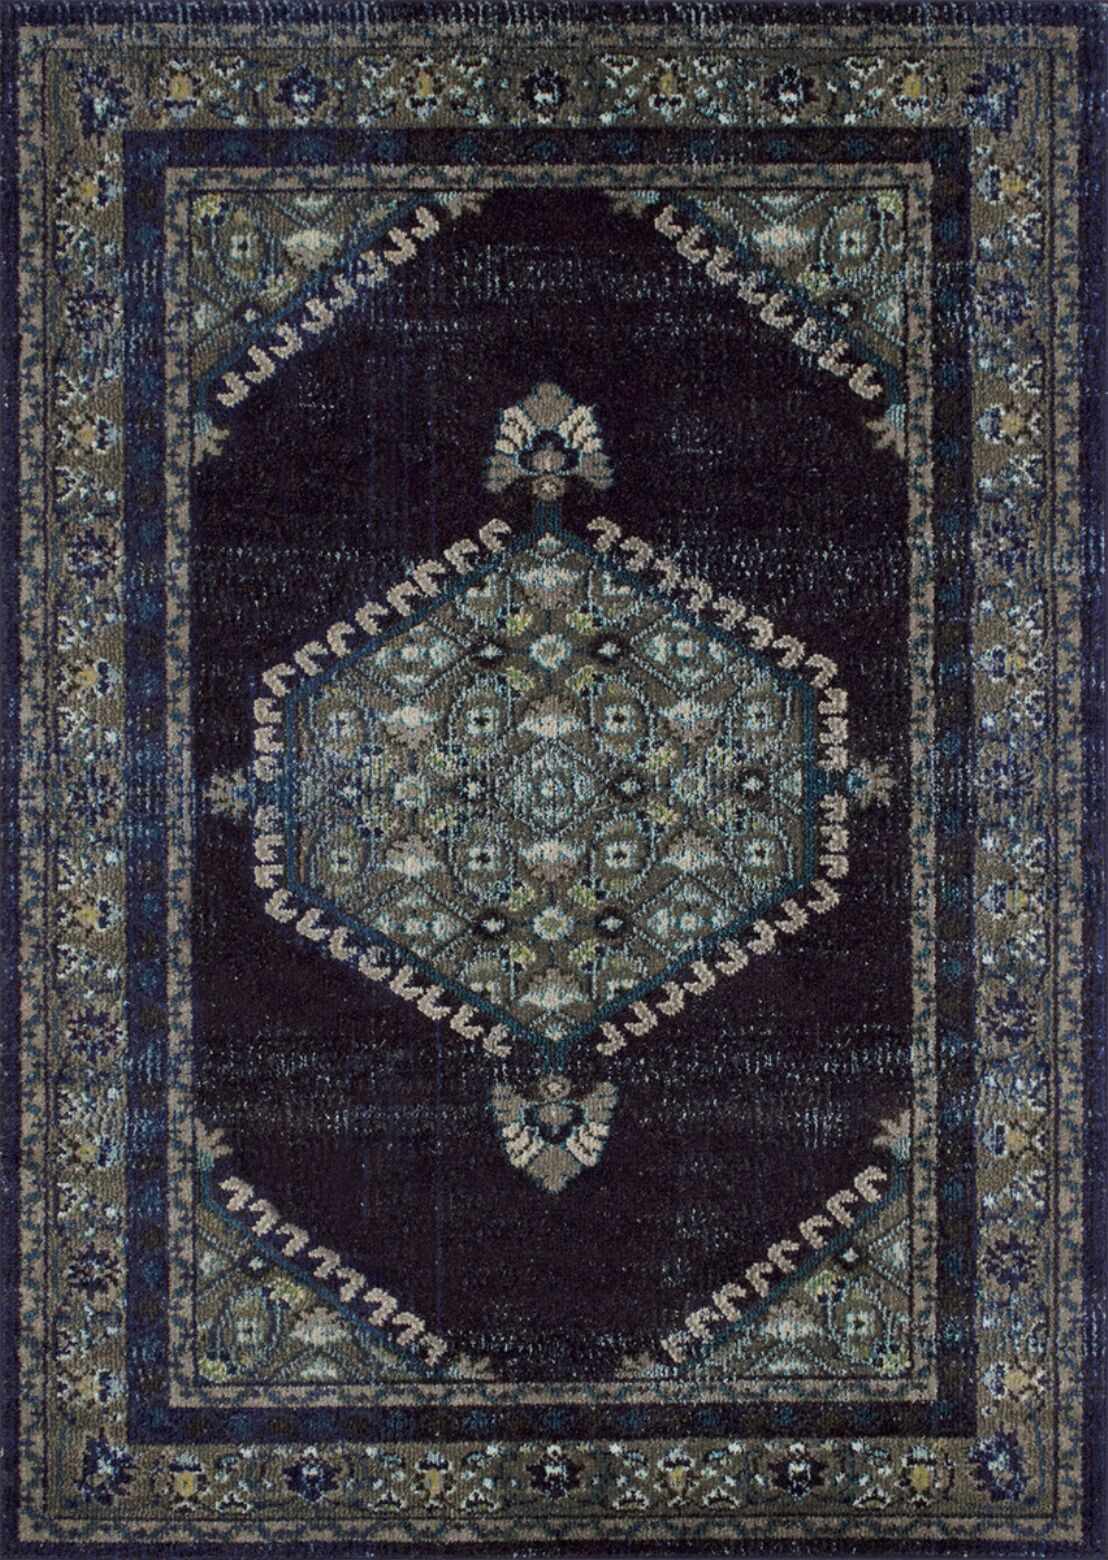 Feldmann Persian Inspired Espresso/Blue Area Rug Rug Size: Rectangle 8' x 10'